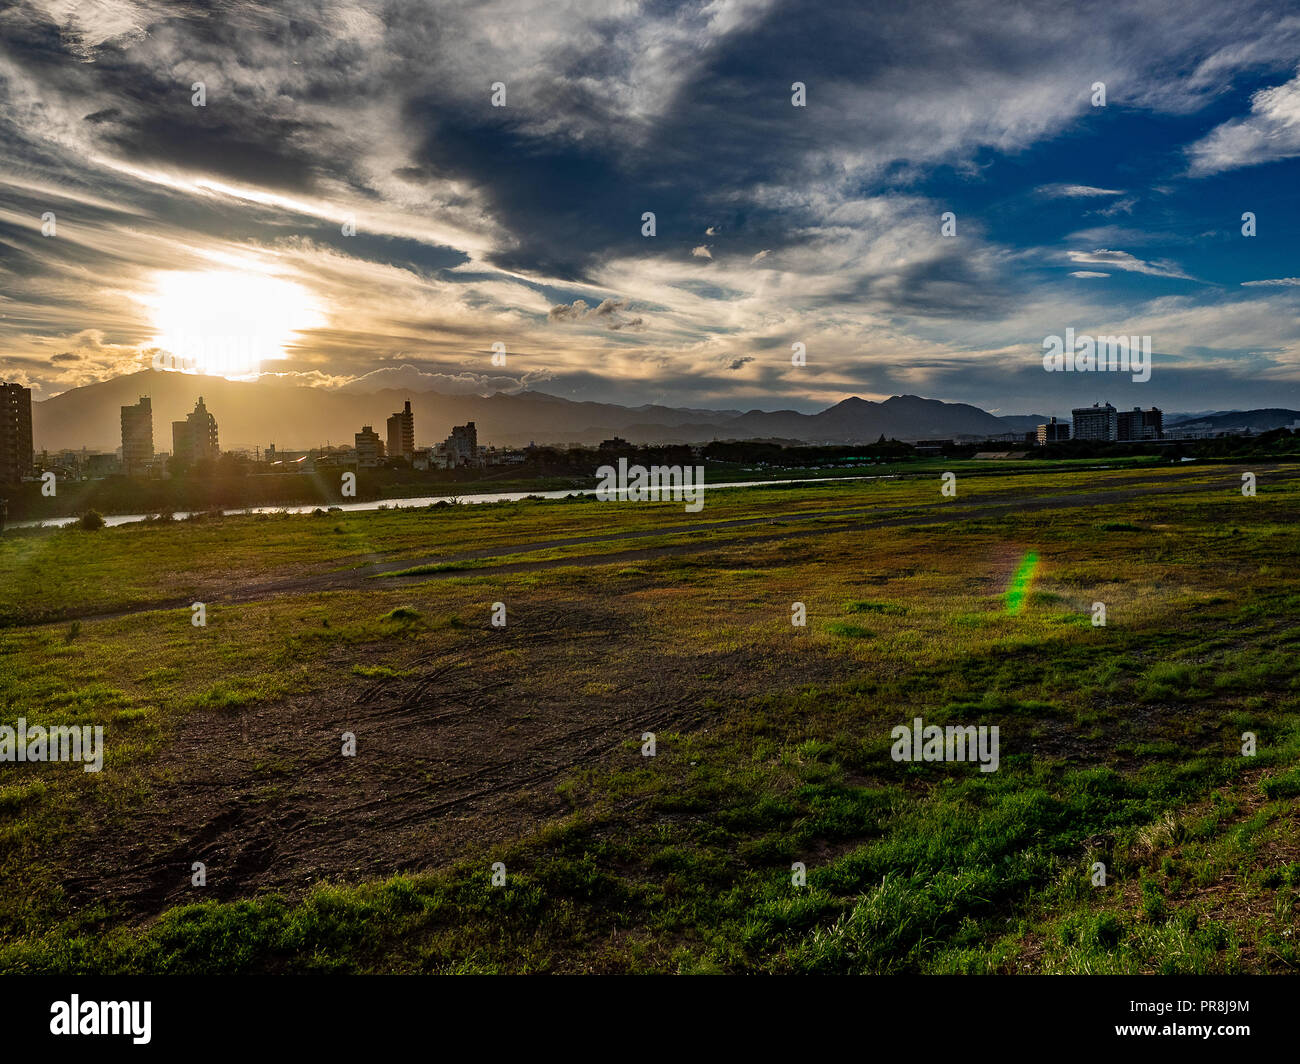 Looking out over the shore of the Sagami River near Ebina, Kanagawa Prefecture, Japan near sunset. - Stock Image